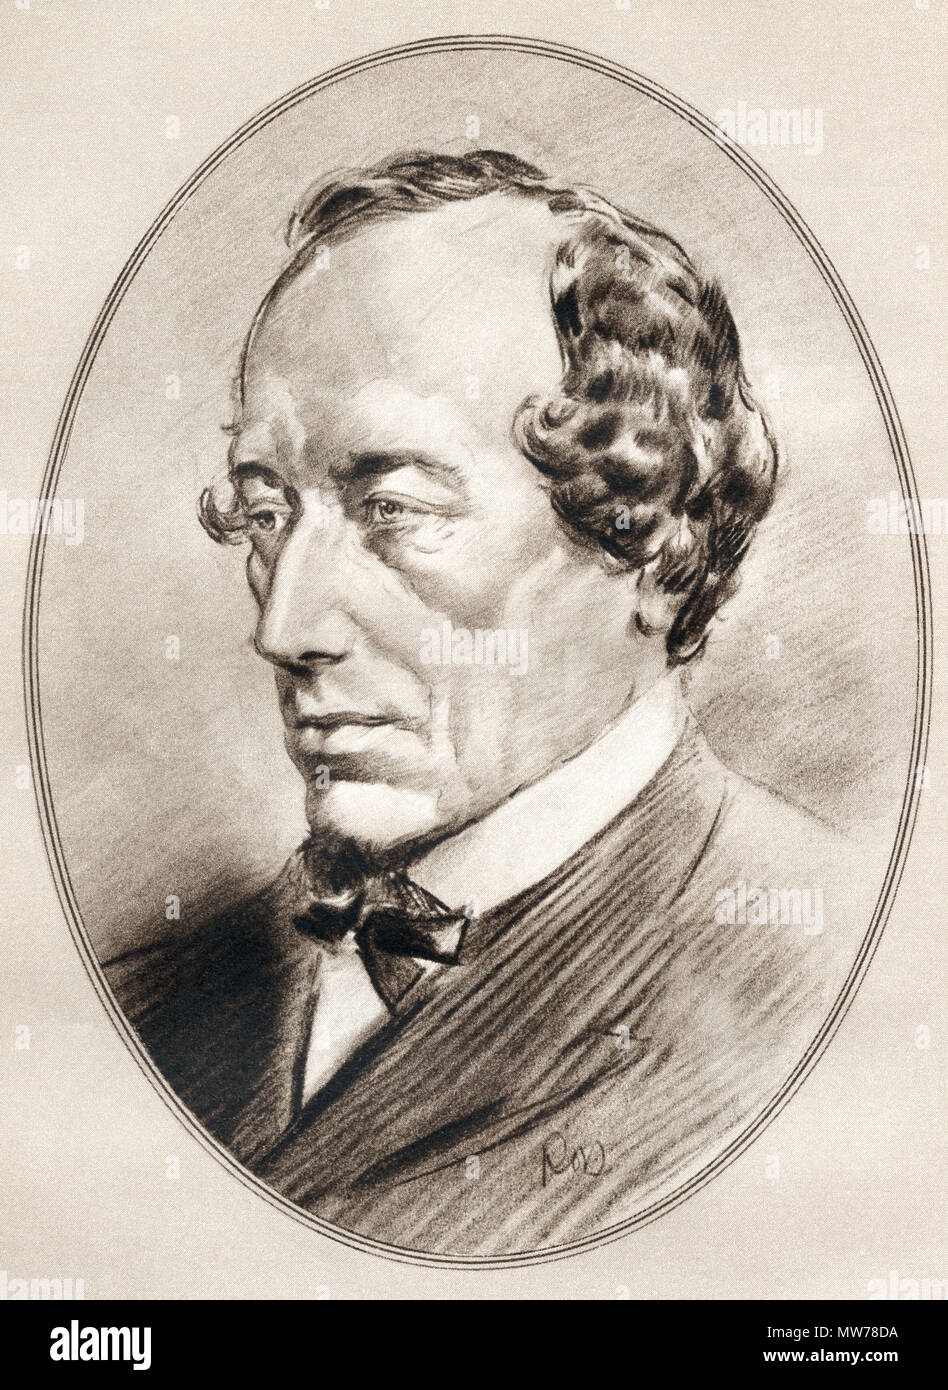 Benjamin Disraeli, 1st Earl of Beaconsfield, 1804 –  1881.  British statesman of the Conservative Party and two times Prime Minister of the United Kingdom.  Illustration by Gordon Ross, American artist and illustrator (1873-1946), from Living Biographies of Famous Men. Stock Photo